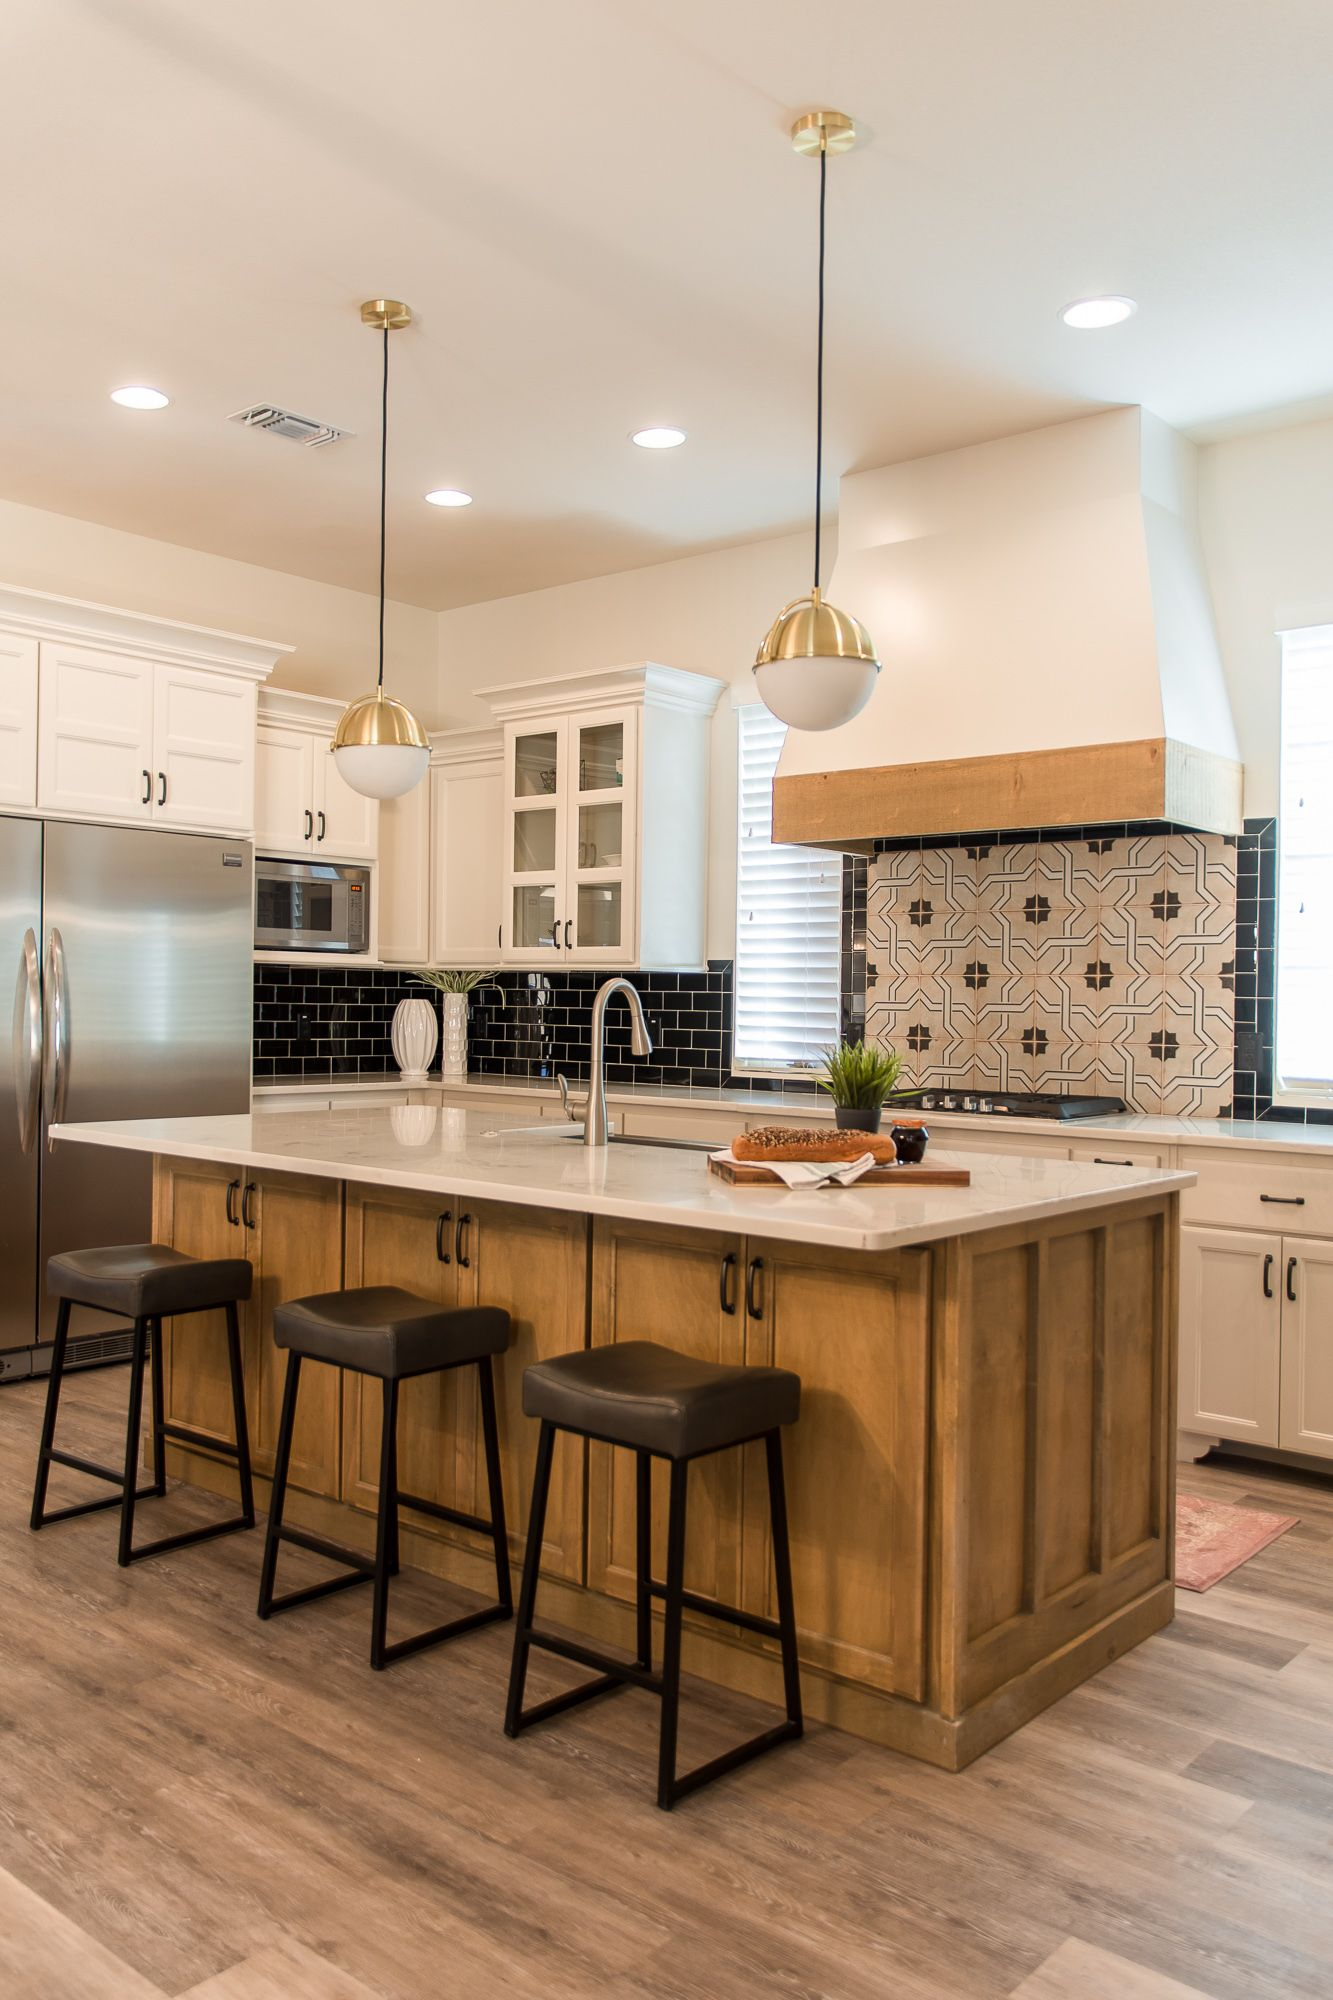 This Kitchen Combines Two Tone Cabinets And A Standout Backsplash To Make A Bold Statement We Love The Stain Home Kitchens Kitchen Design Kitchen Inspirations